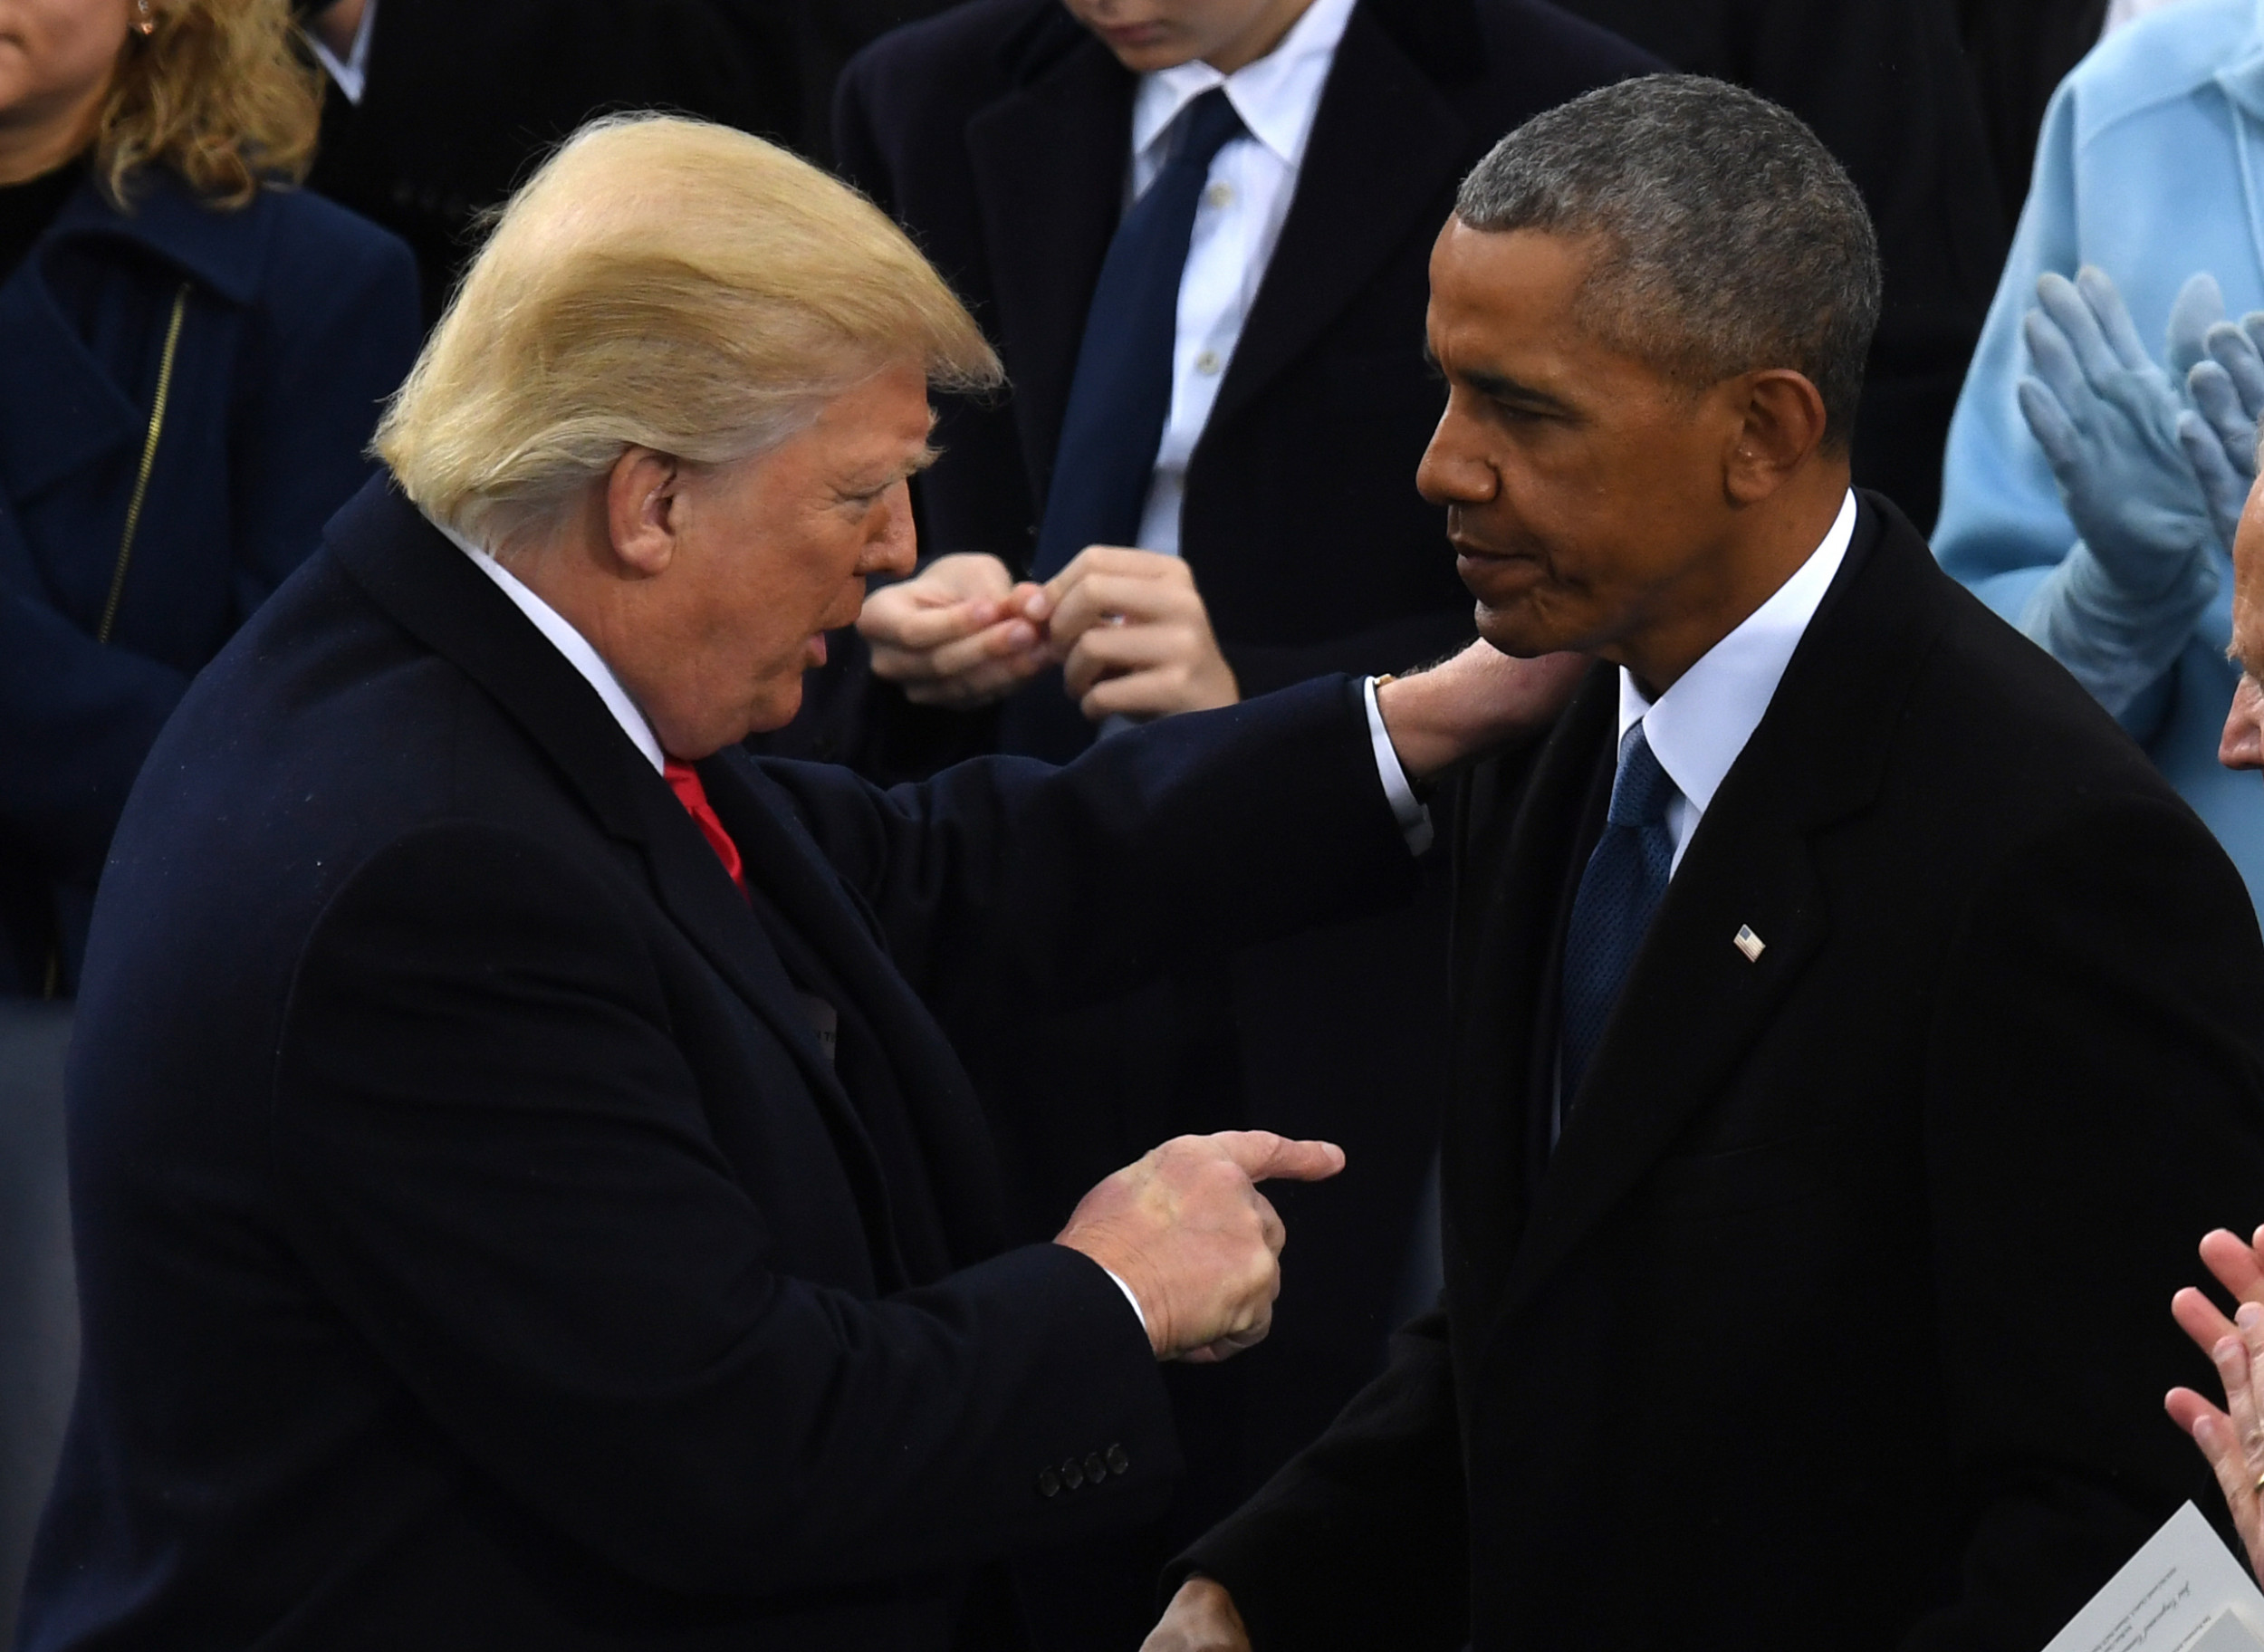 Trump Accused Obama of Foreign Money Laundering 7 Years Ago To Day ...